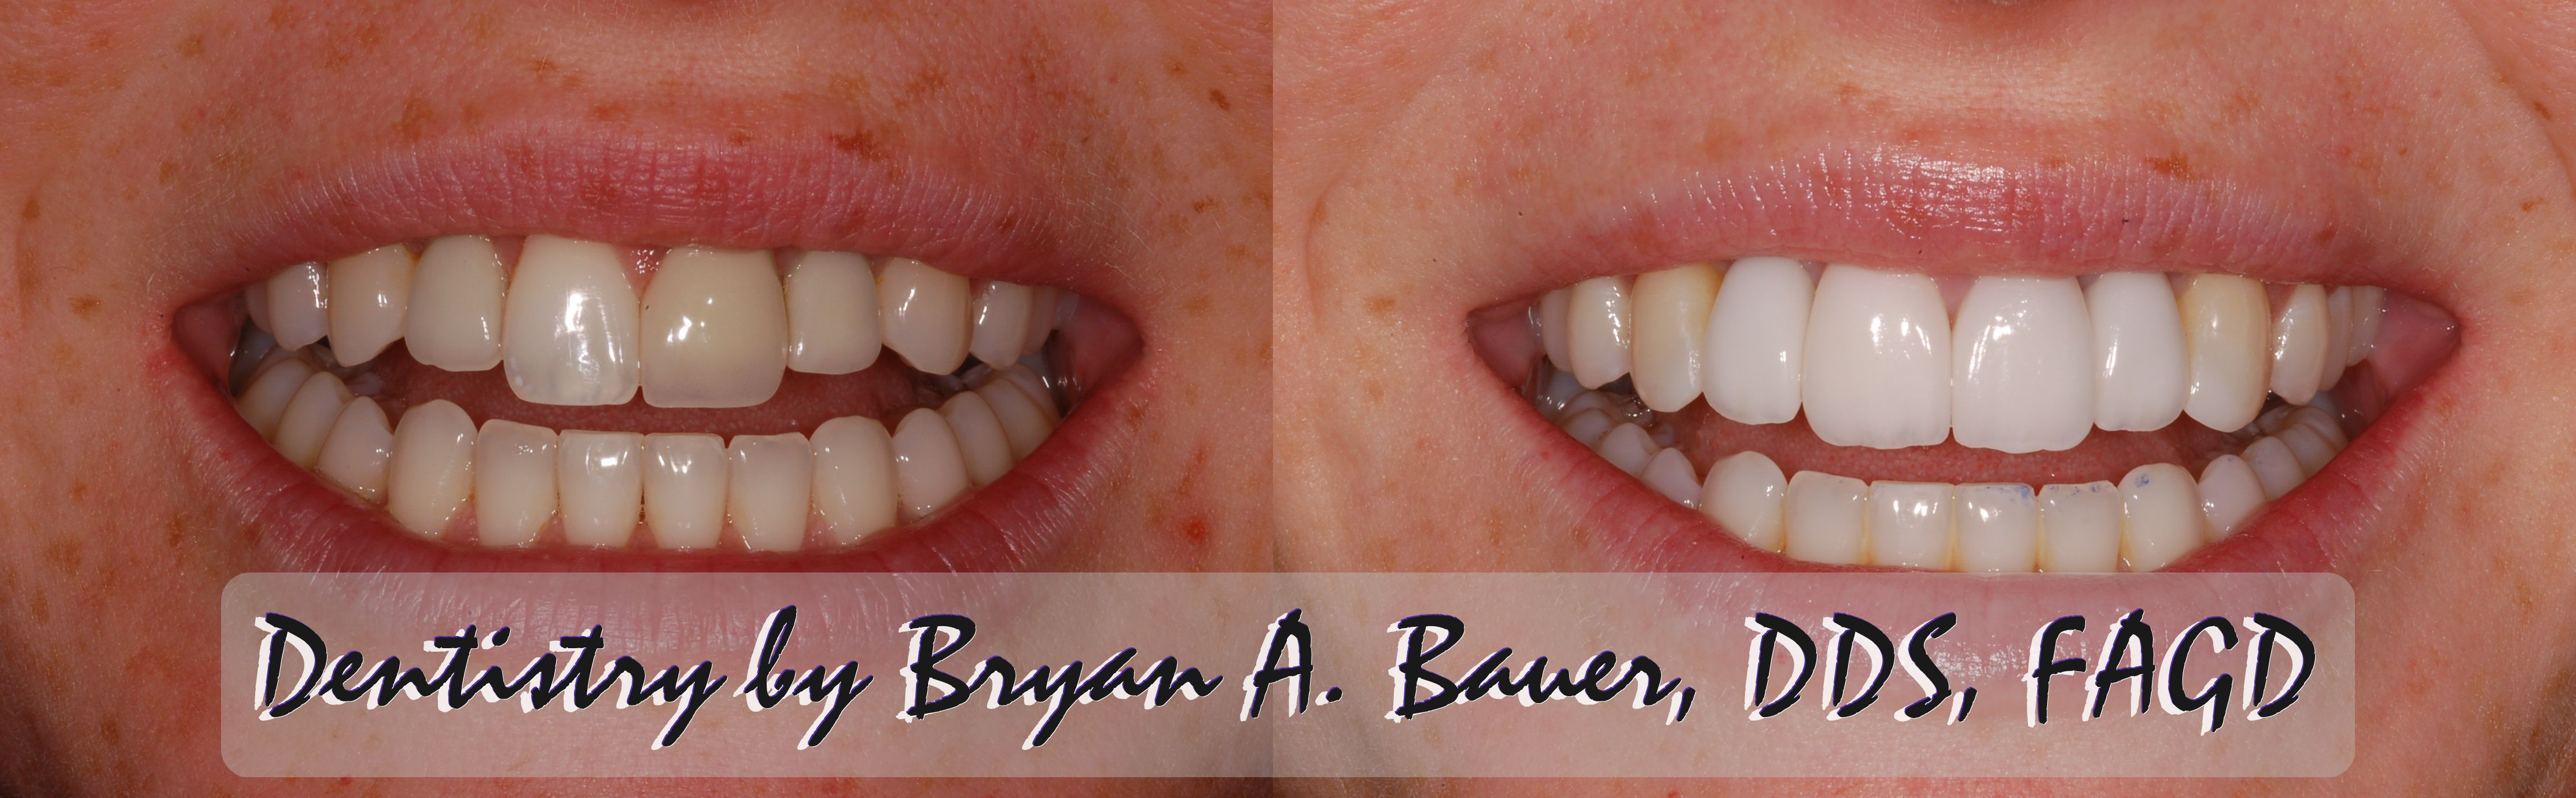 Crowns or veneers 72